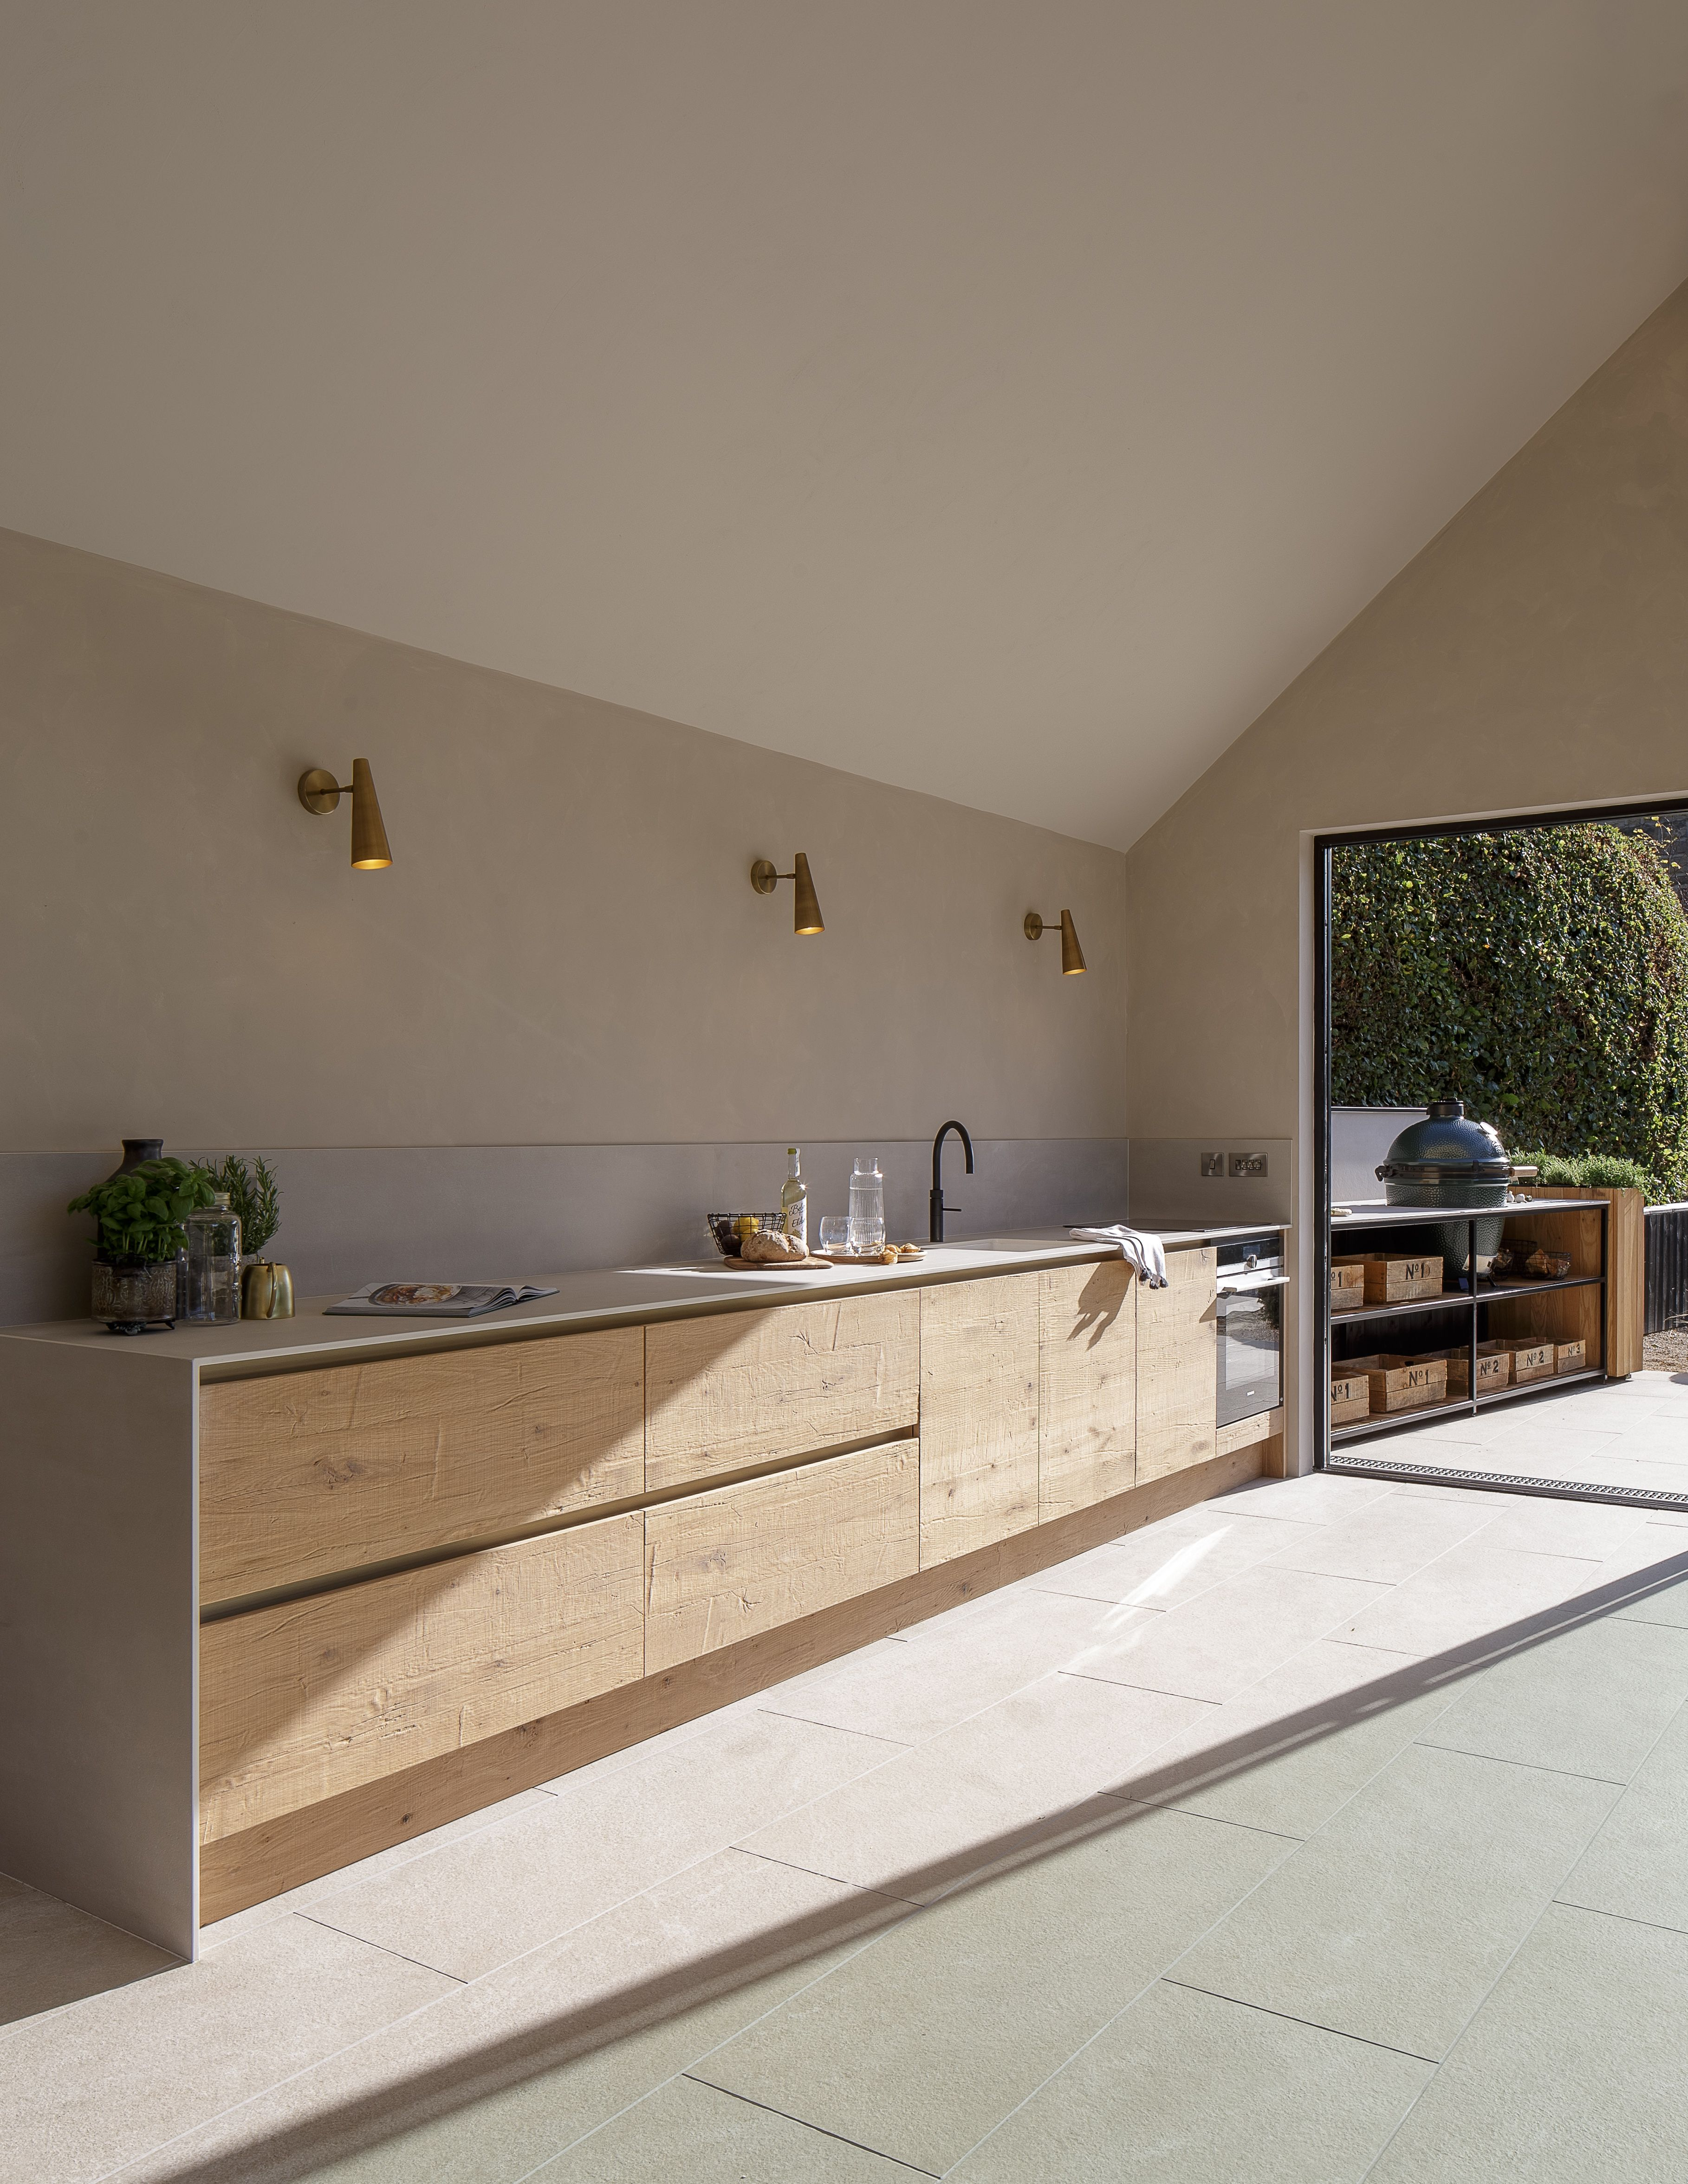 Pin on Nest Kitchens Gallery